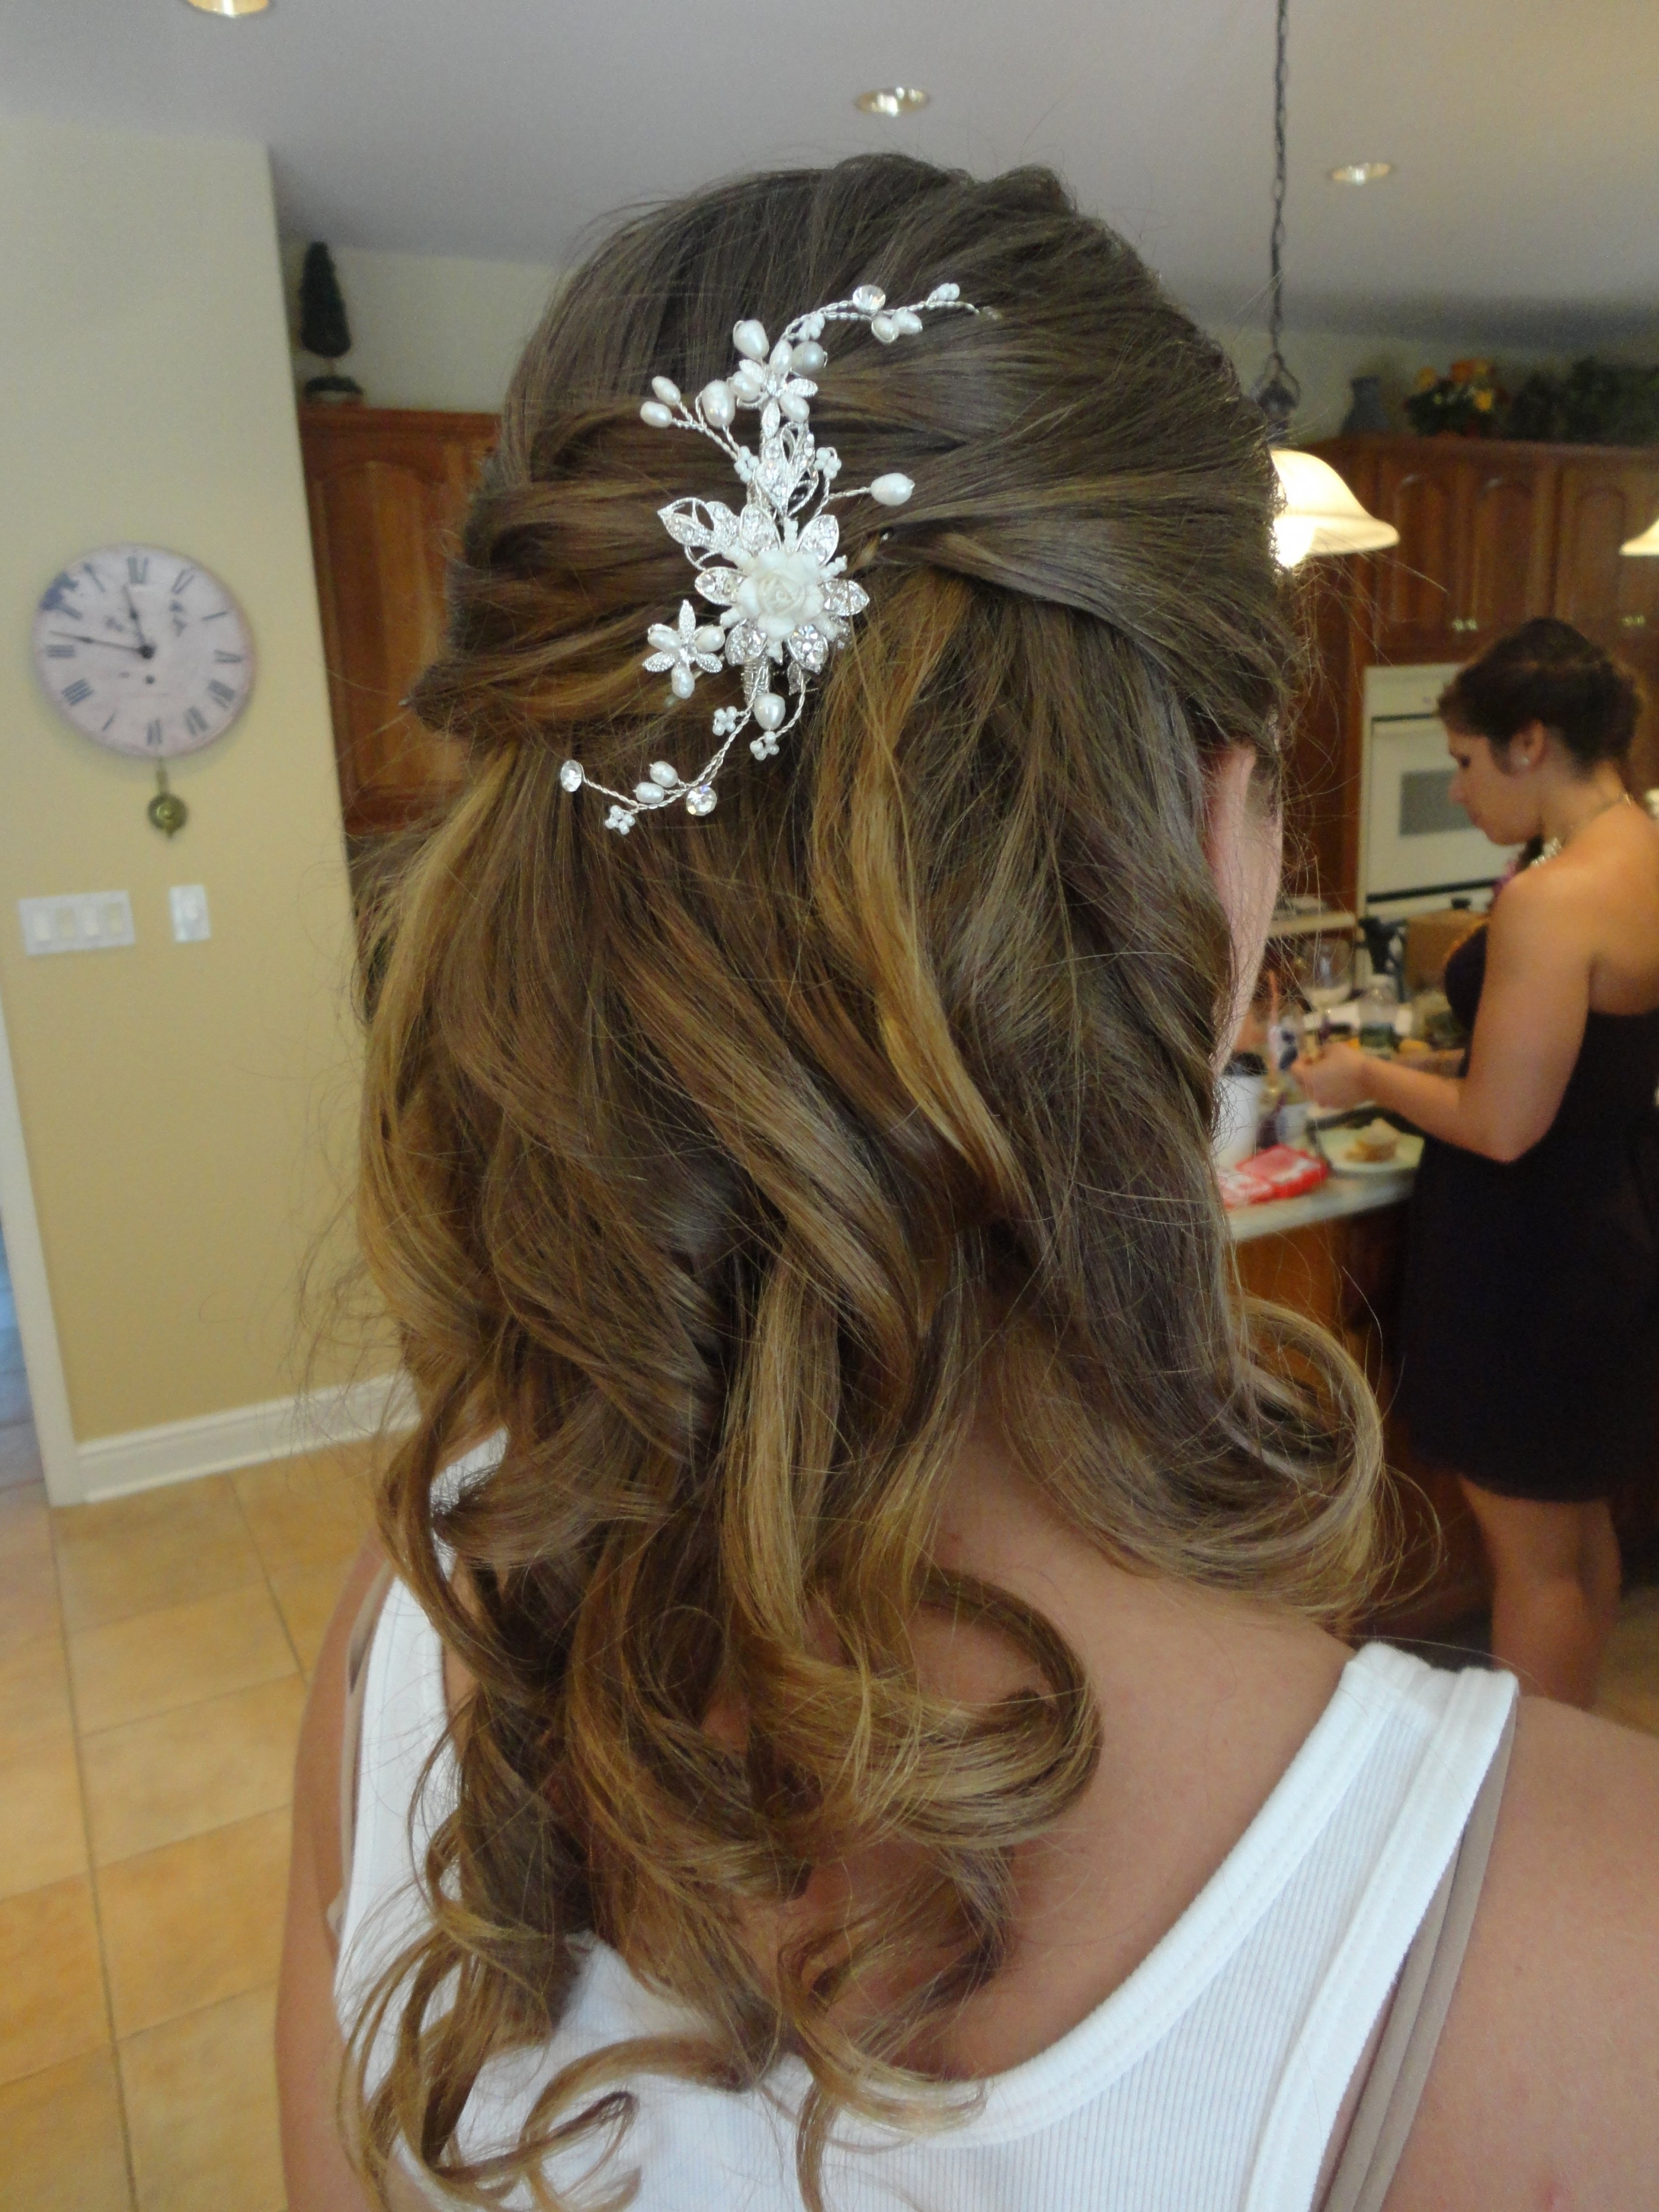 Singular Hairstyles Halfp And Down For Wedding With Braid Veil Long With Trendy Medium Length Hair Half Up Wedding Hairstyles (View 12 of 15)